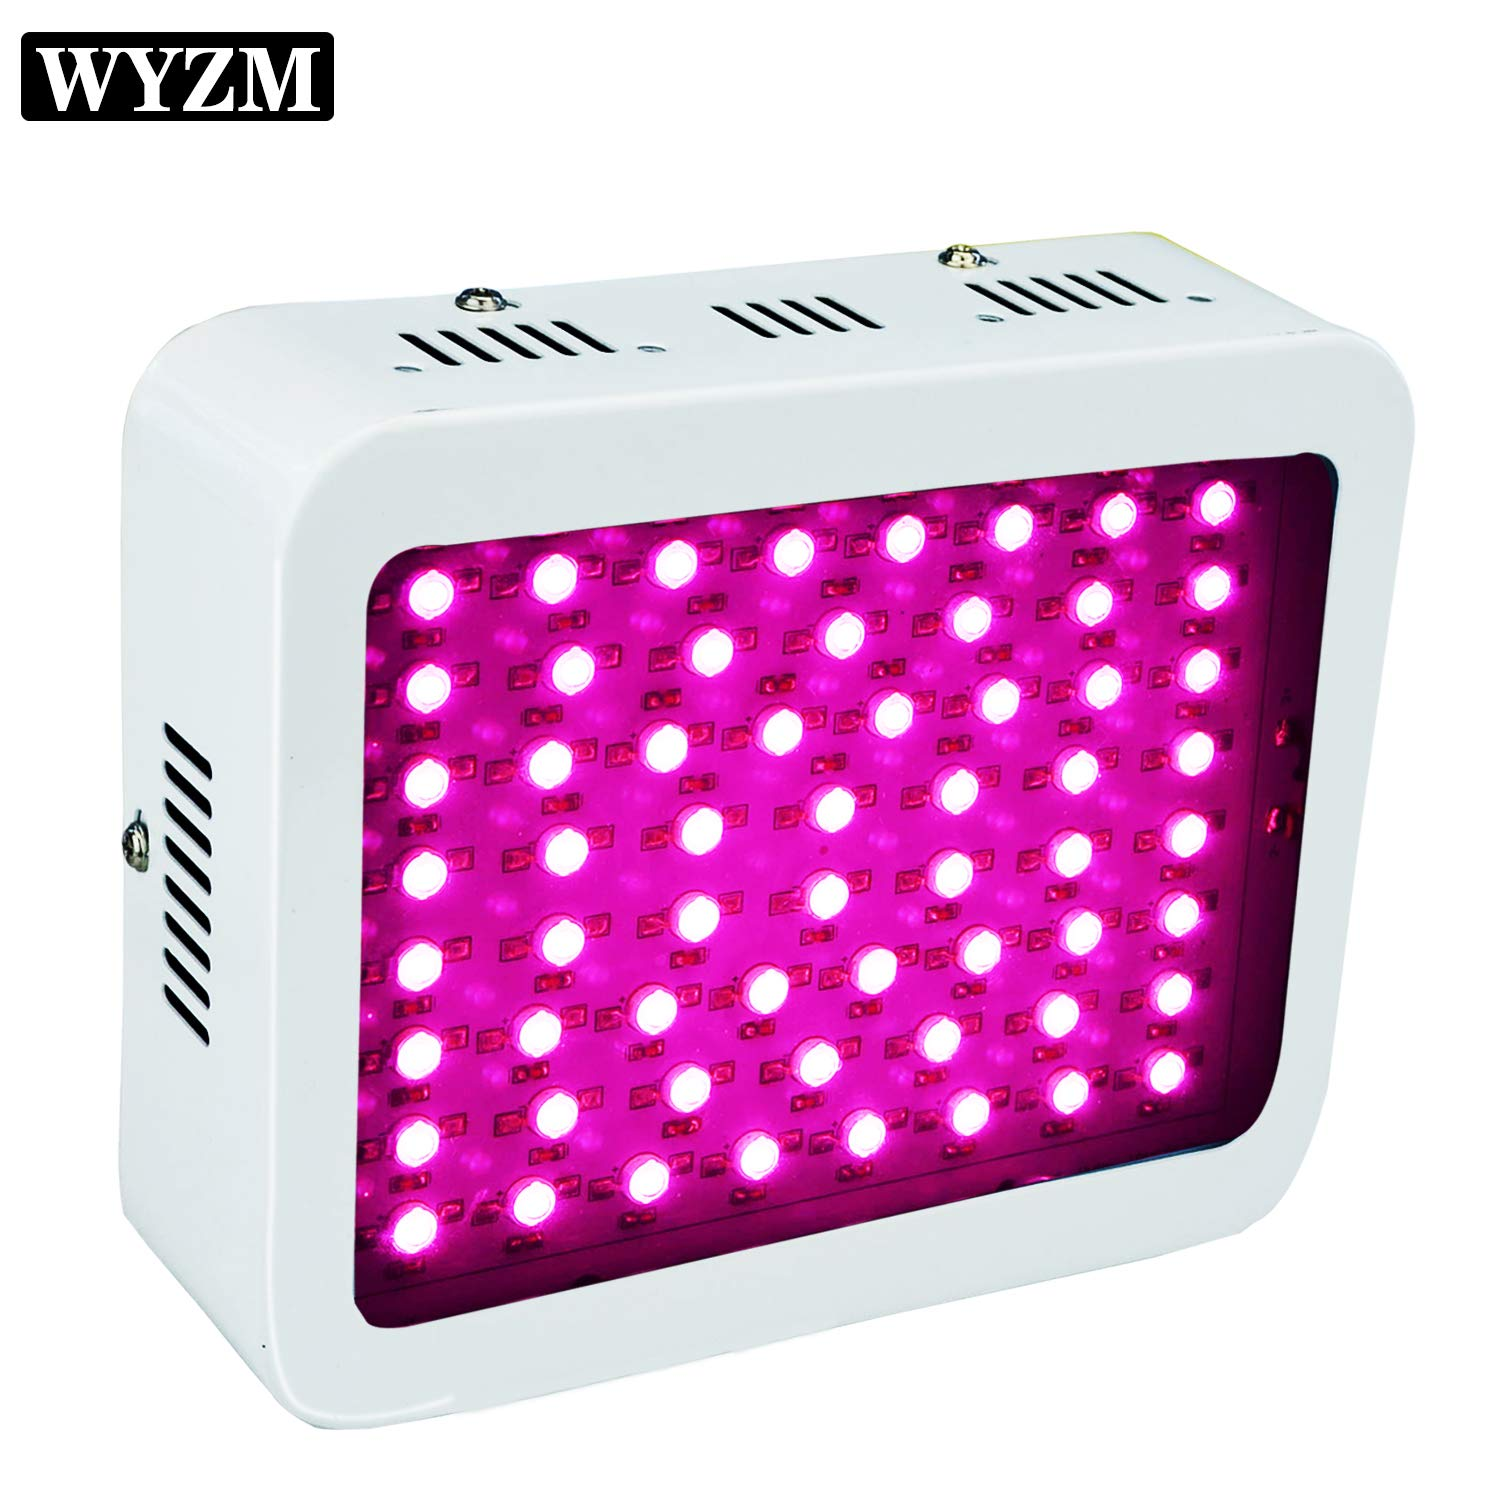 600W Full Spectrum LED Grow Light,100-265V Input,Special Design for Indoor Growing Herbs and Medical Plants (60X10W)